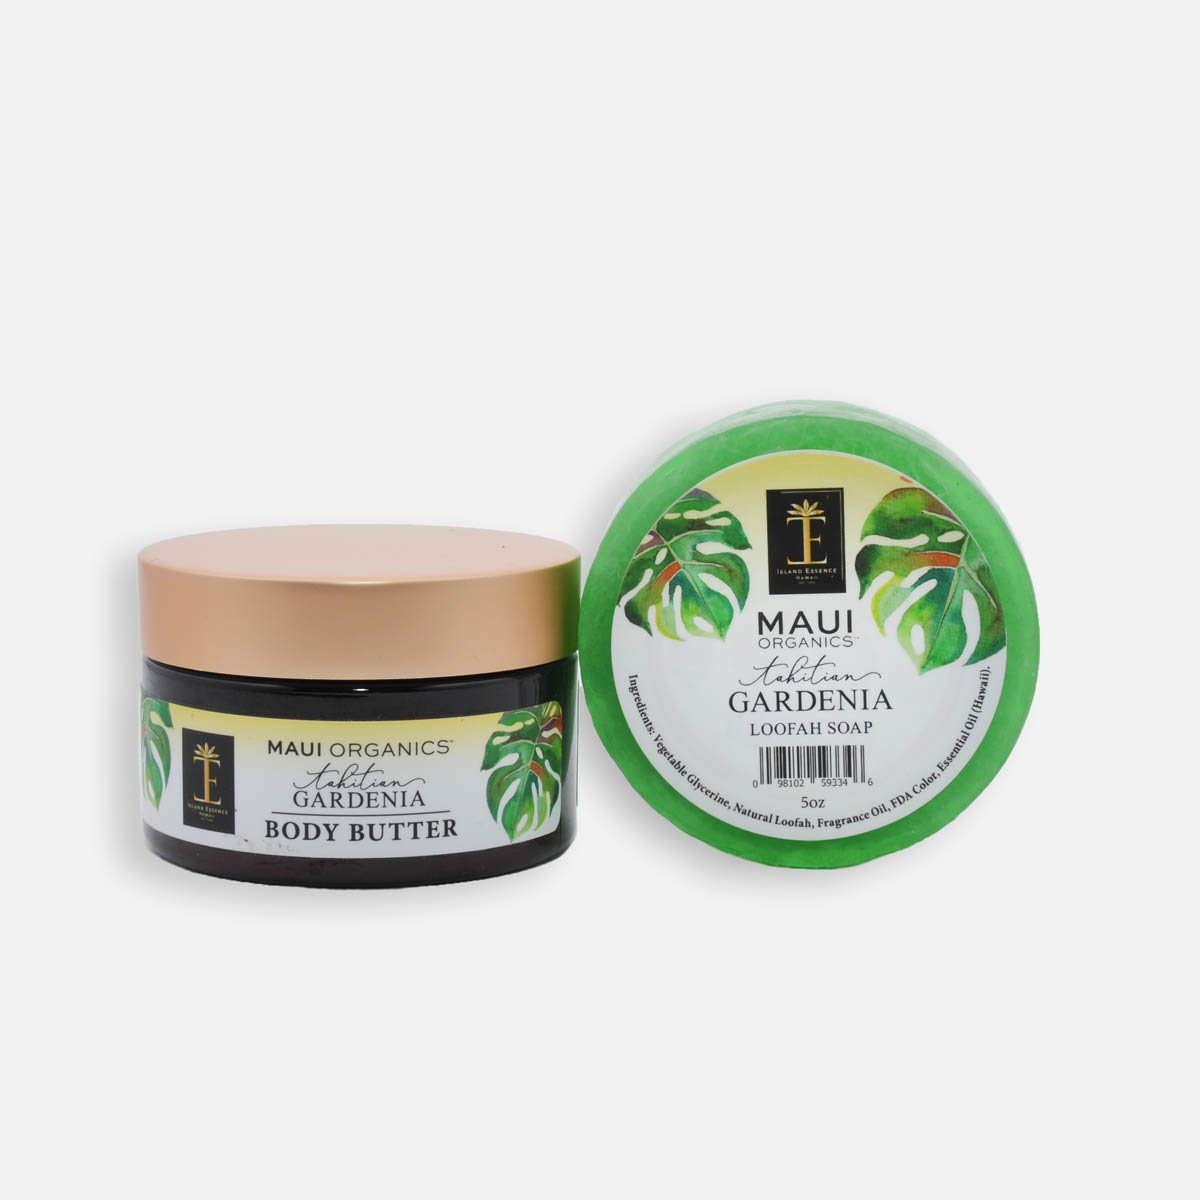 Island Essence - Tahitian Gardenia Loofah Soap & Body Butter Gift Collection - Natural Vegan Body Care From Hawaii